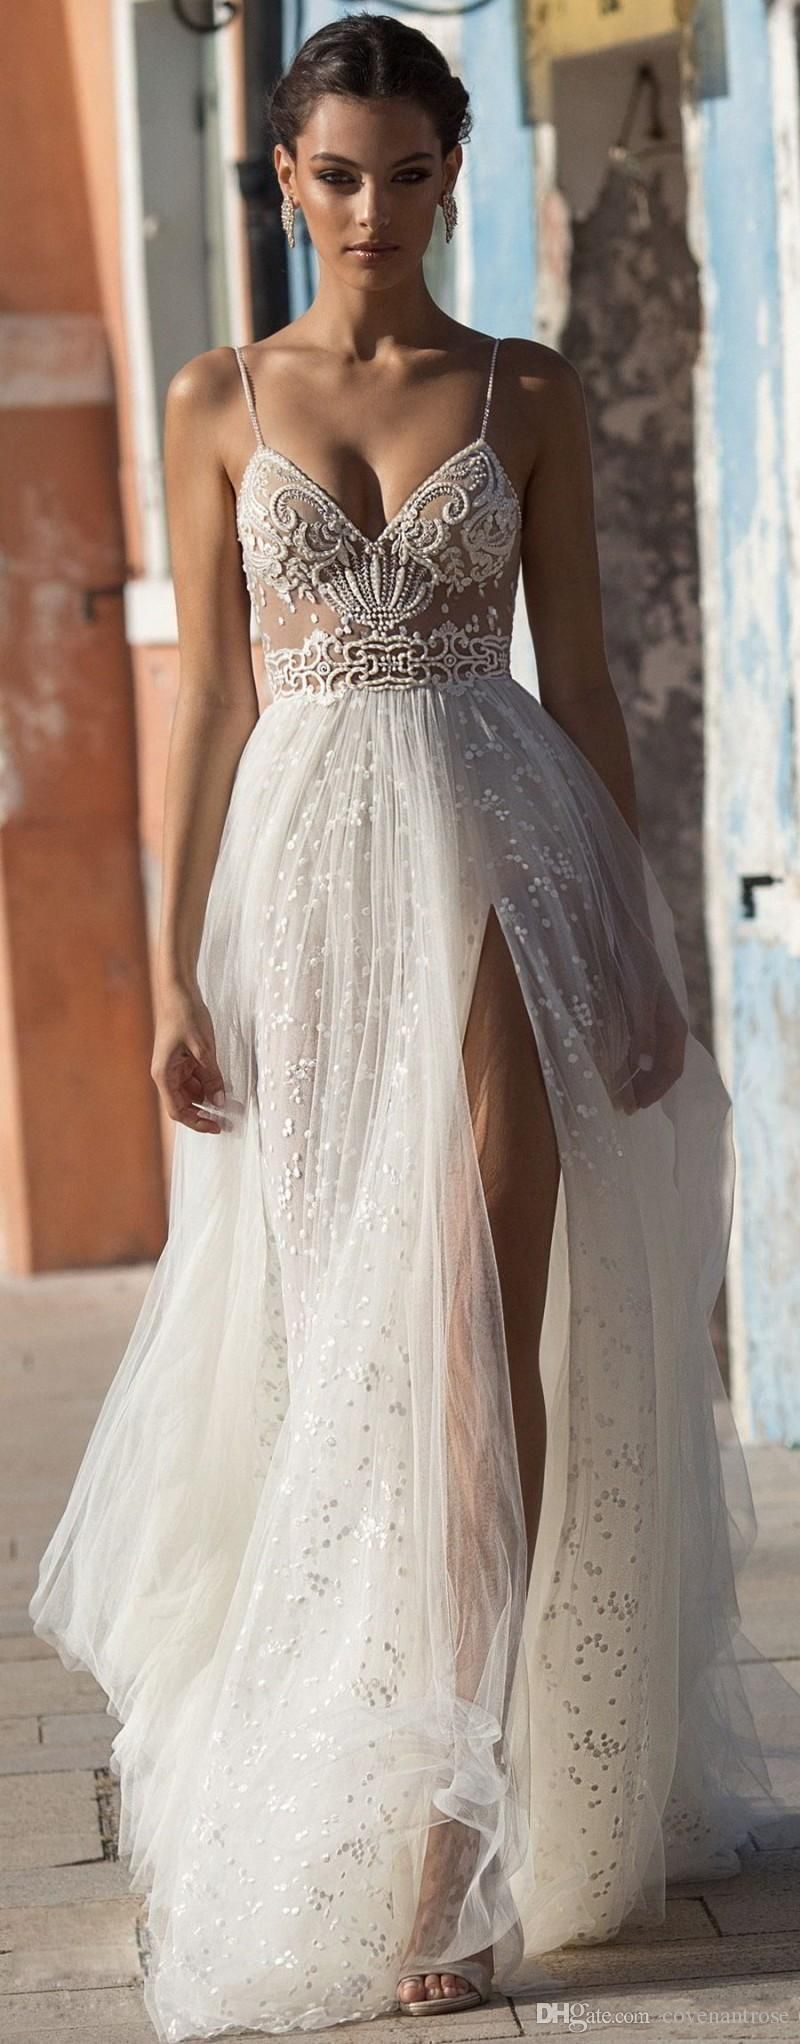 4d6ccd19e295 Sexy Illusion Side Split Wedding Dresses A Line Lace Applique Chiffon 2018  Keyhole Back Bridal Gowns Cheap